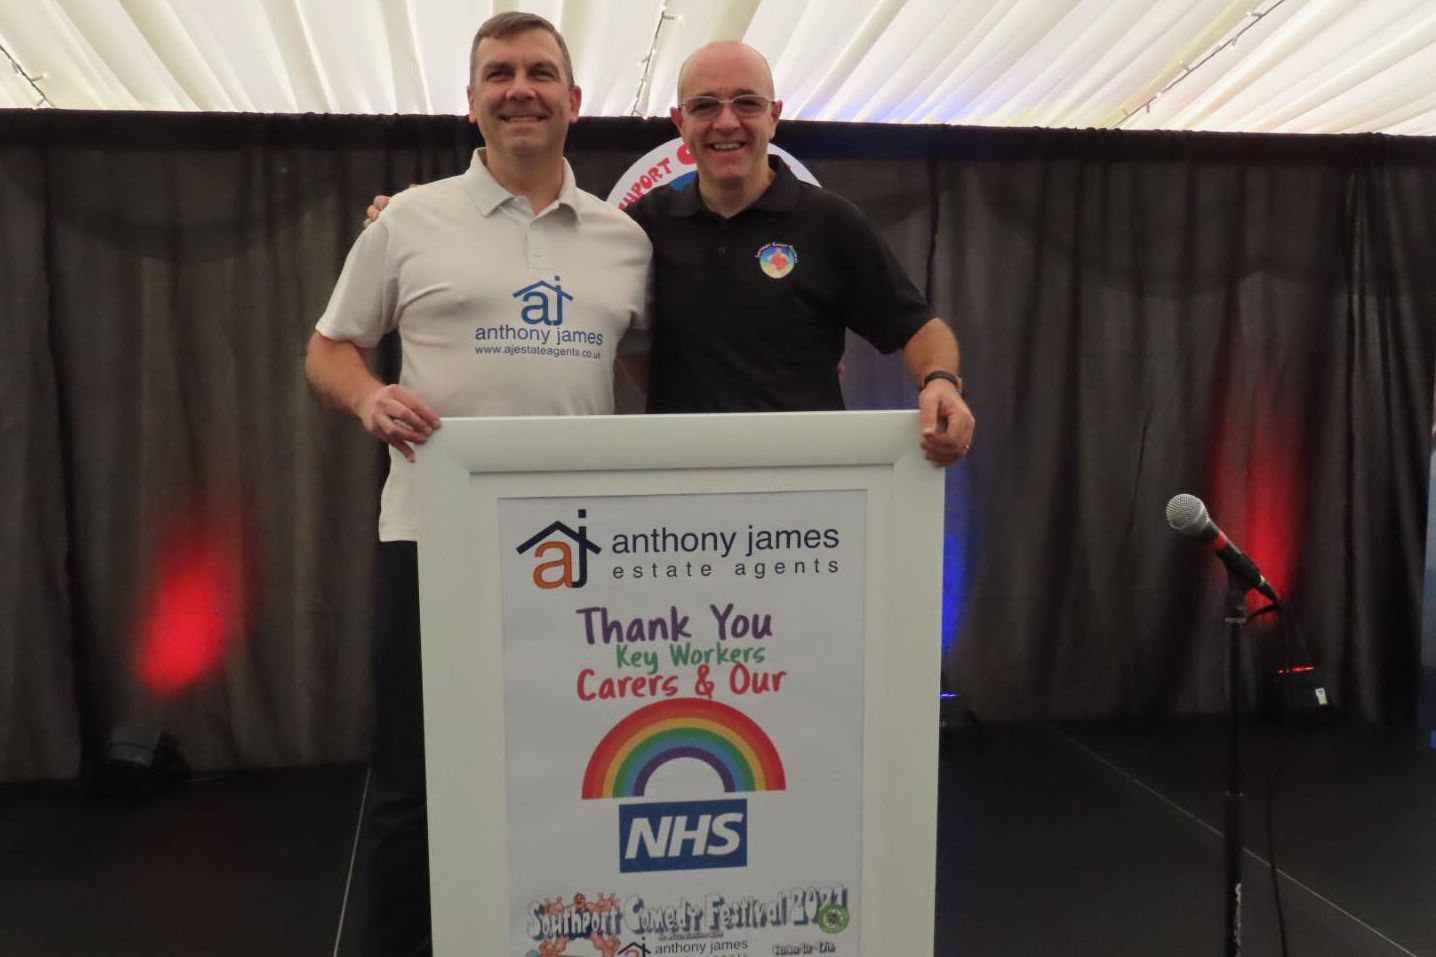 Free 'Thumbs Up For The NHS' comedy bingo night to be held at Southport Comedy Festival